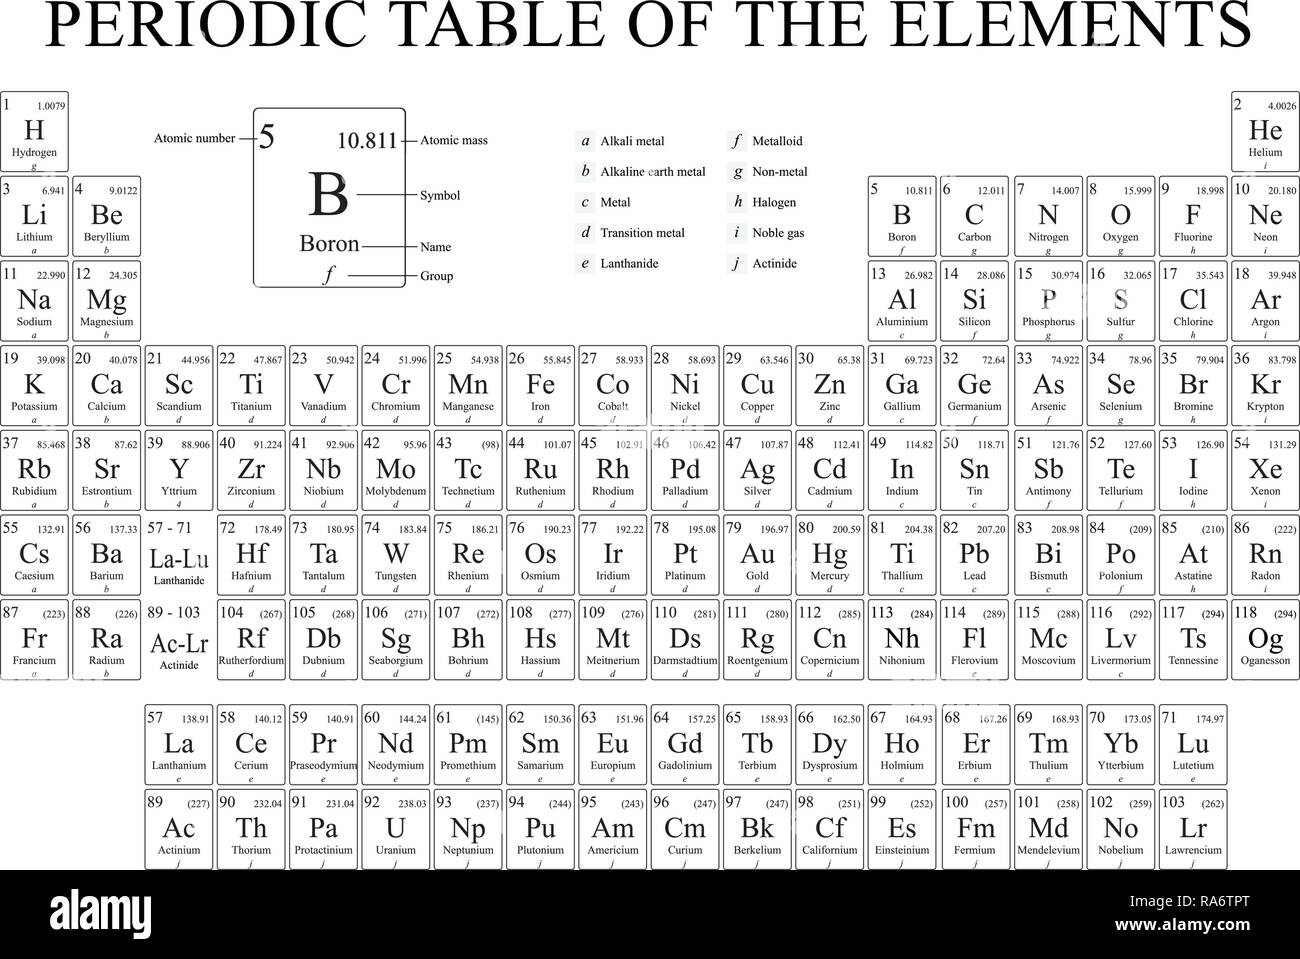 periodic table of the elements in black and white with the 4 new elements included on